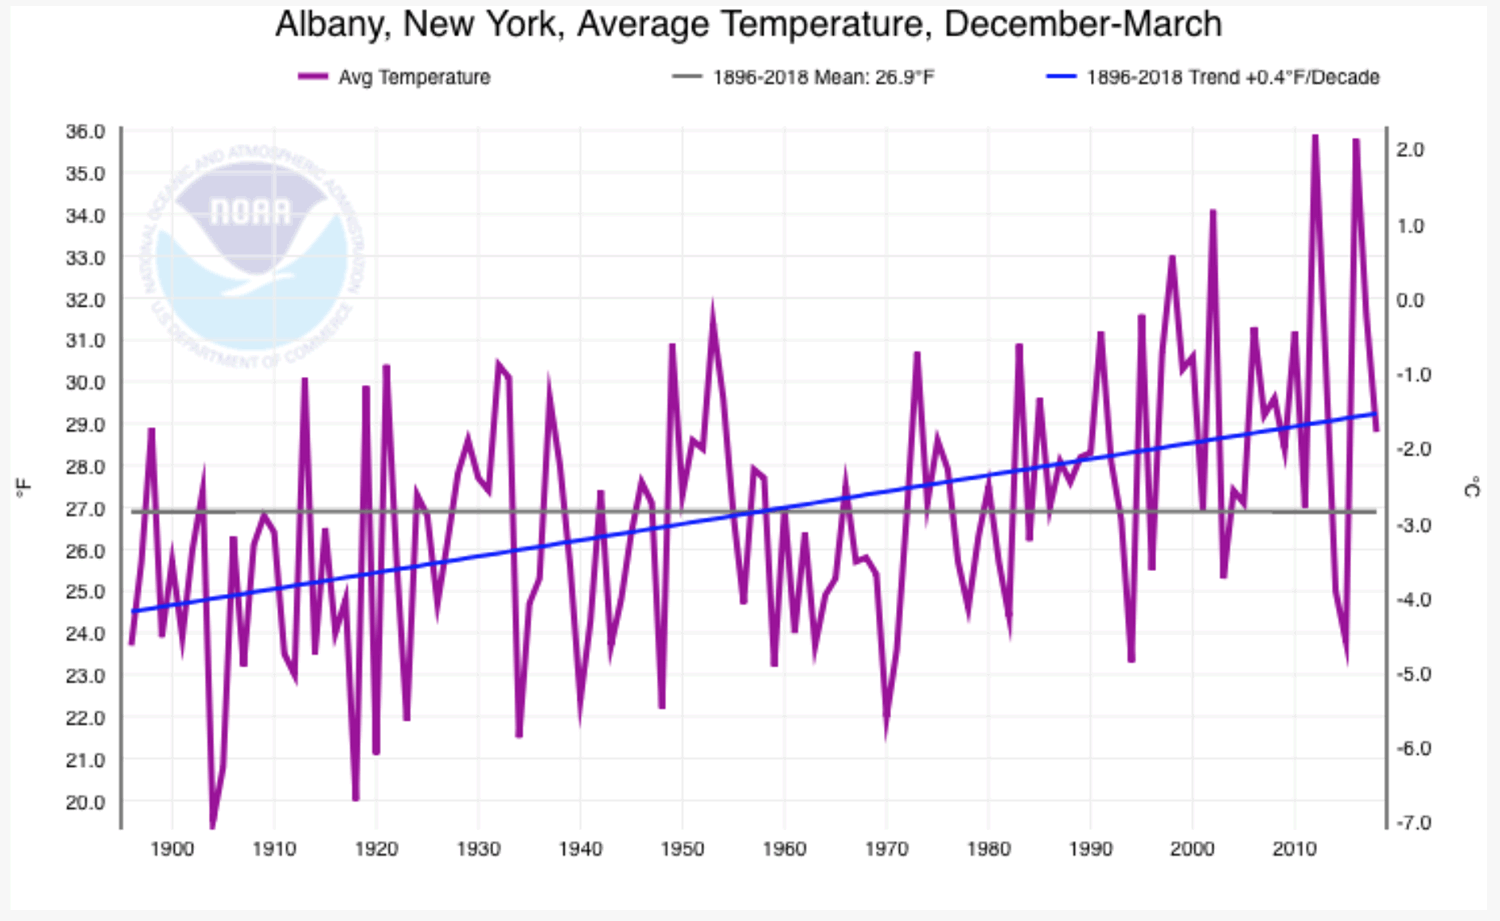 Albany winters 1896-2018 temperature trend